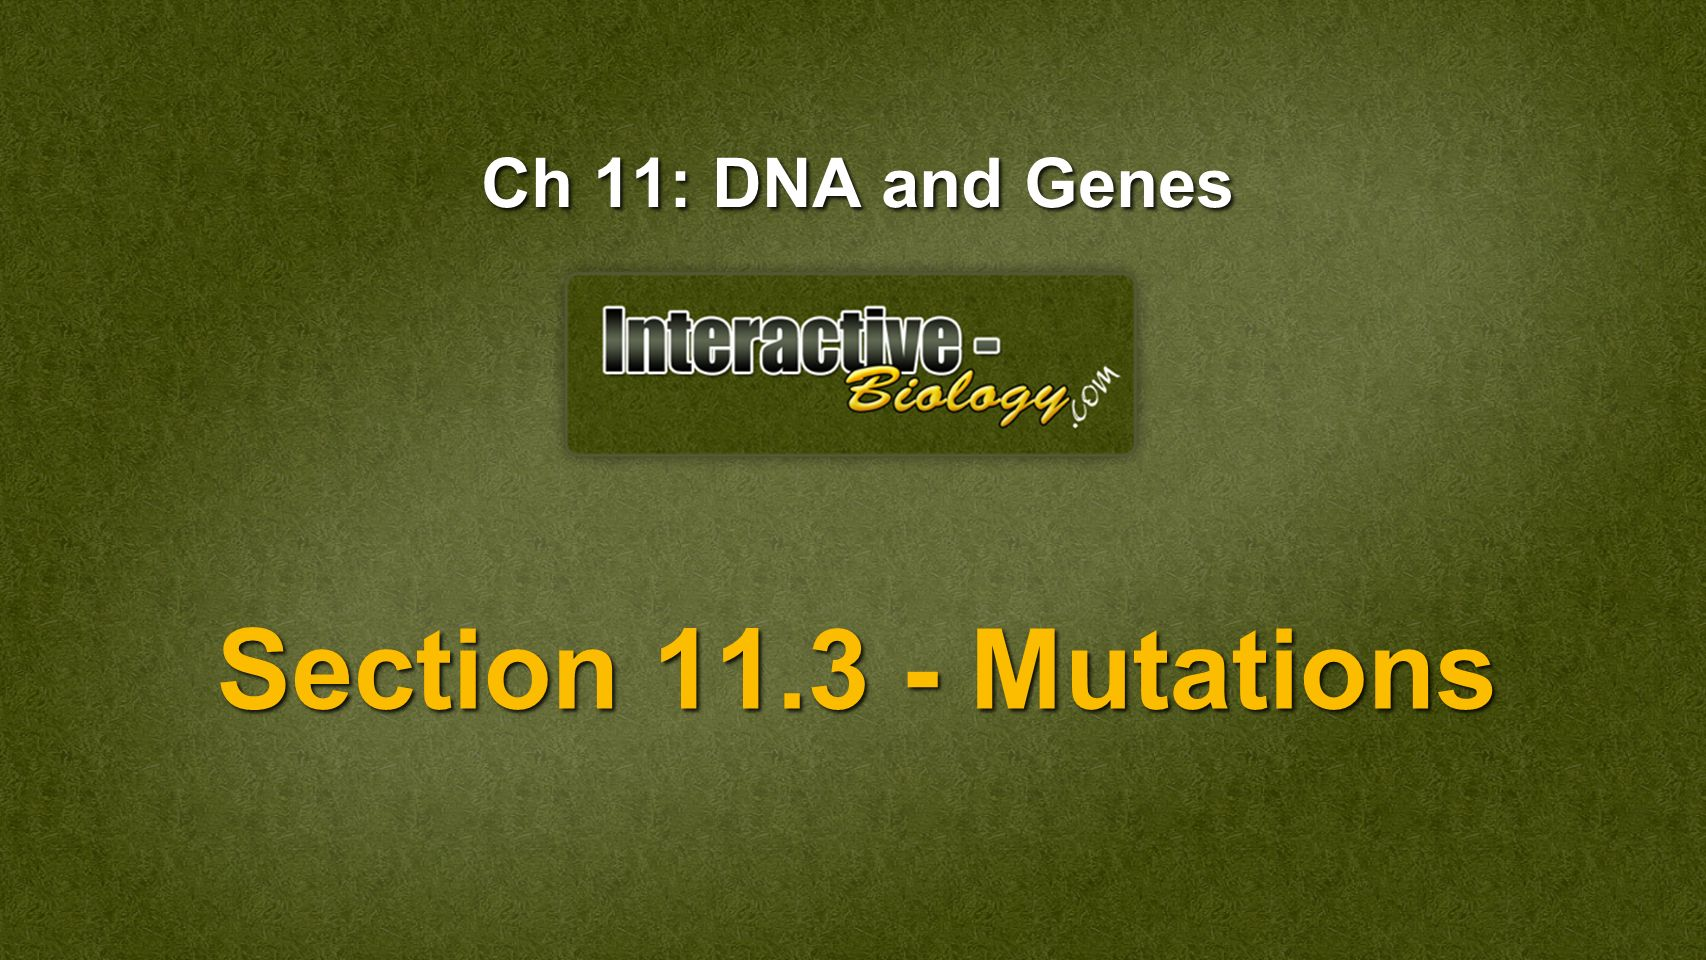 Worksheet Chapter 11 Dna And Genes Worksheet Answers